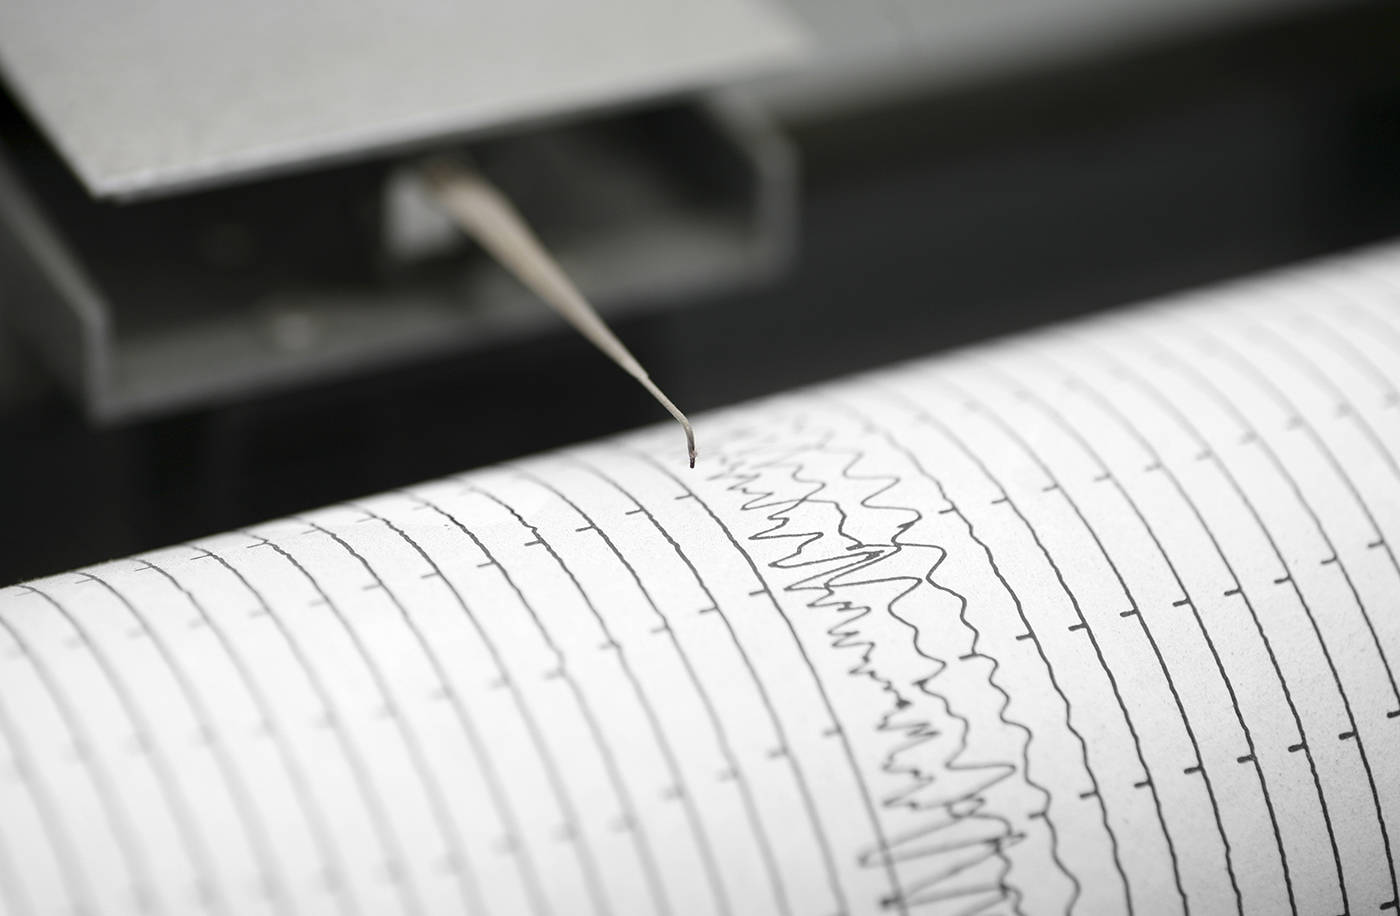 The most recent earthquake was a 2.4 magnitude quak which struck about seven kilometres northwest of Langford on March 5. (istock photo)